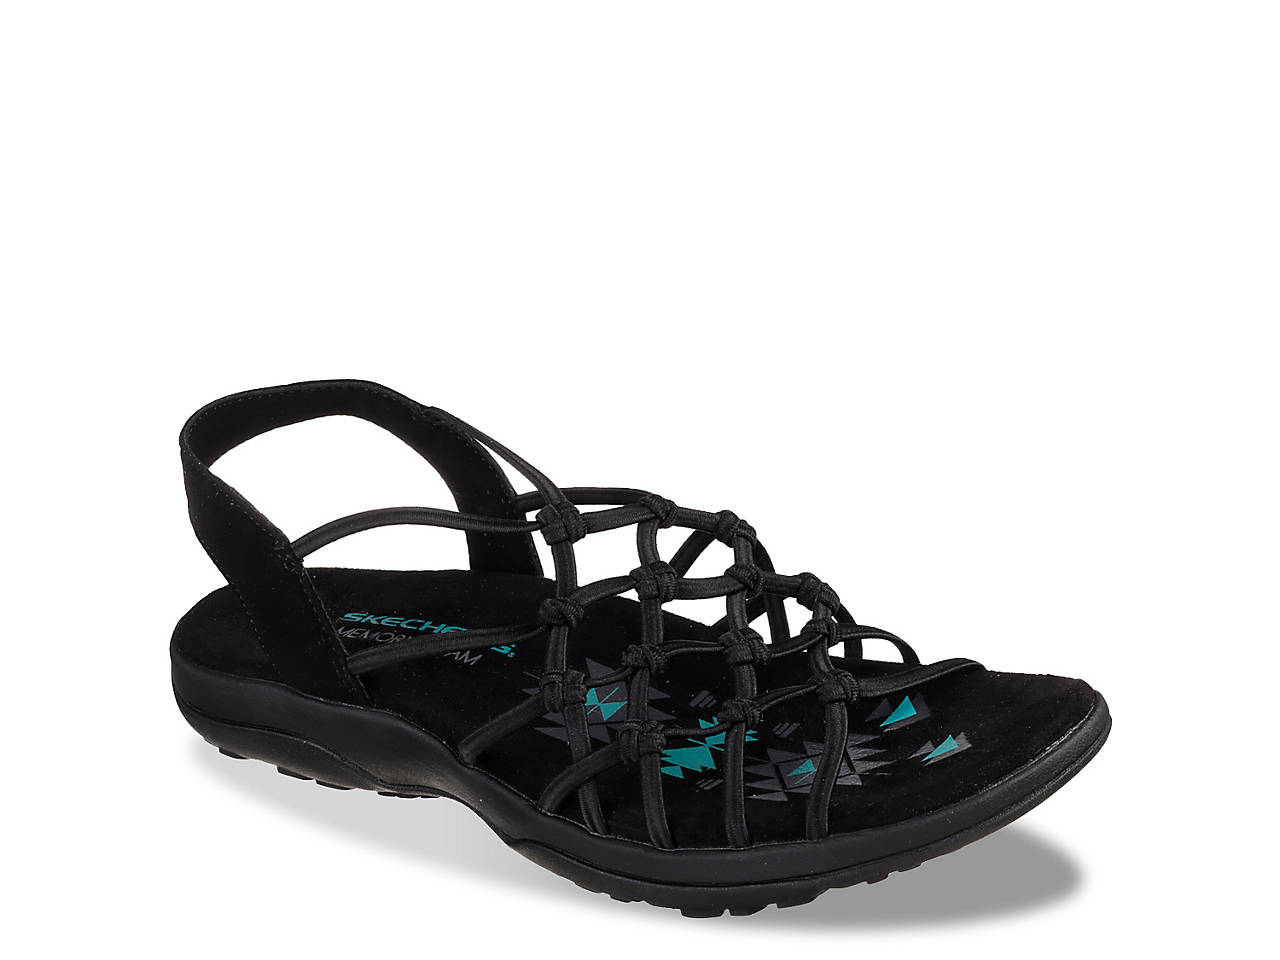 f75fbd98a33a Skechers Reggae Slim Forget Me Knot Sandal Women s Shoes